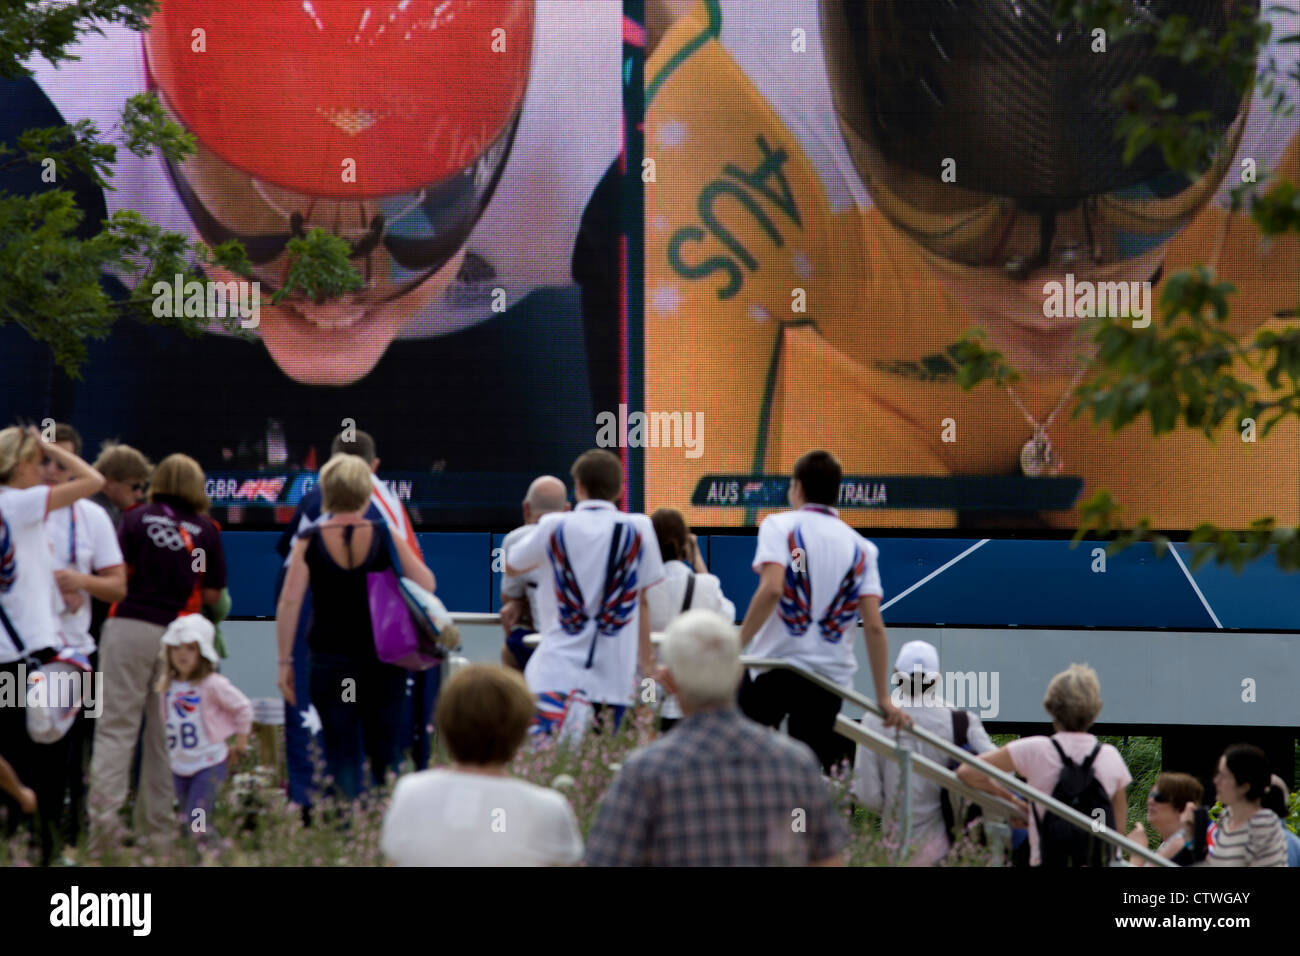 Spectators in the Olympic Park, near the Velodrome, watch a heat of the women's team sprint between Team GB - Stock Image